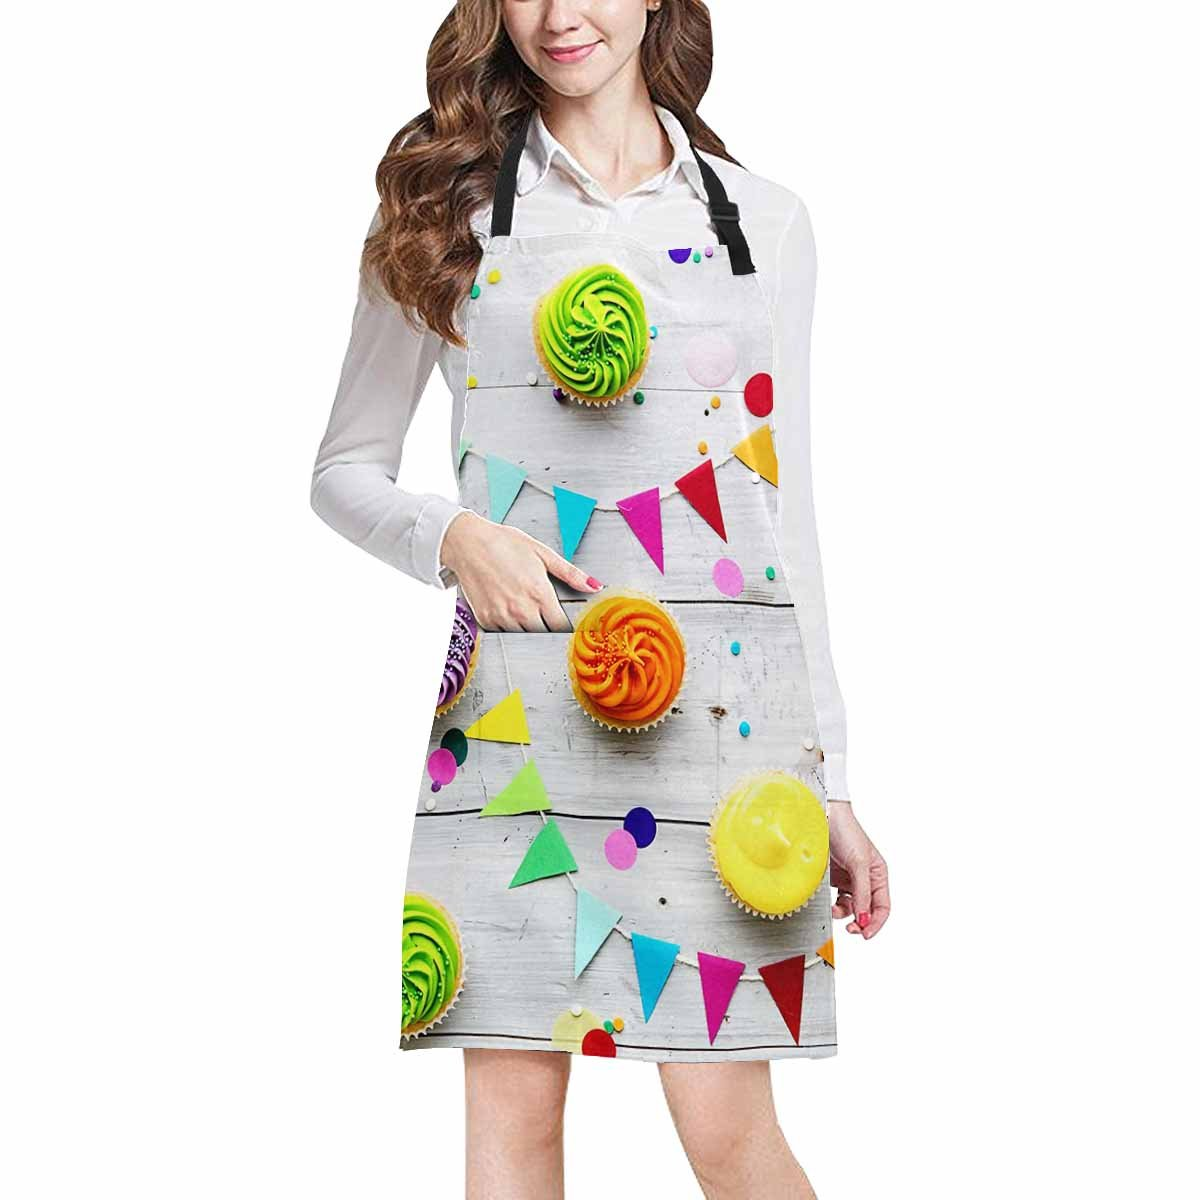 InterestPrint Funny Cupcake Party on Wood Chef Kitchen Apron, Adjustable Strap & Waist Ties, Front Pockets, Perfect for Cooking, Baking, Barbequing, Large Size